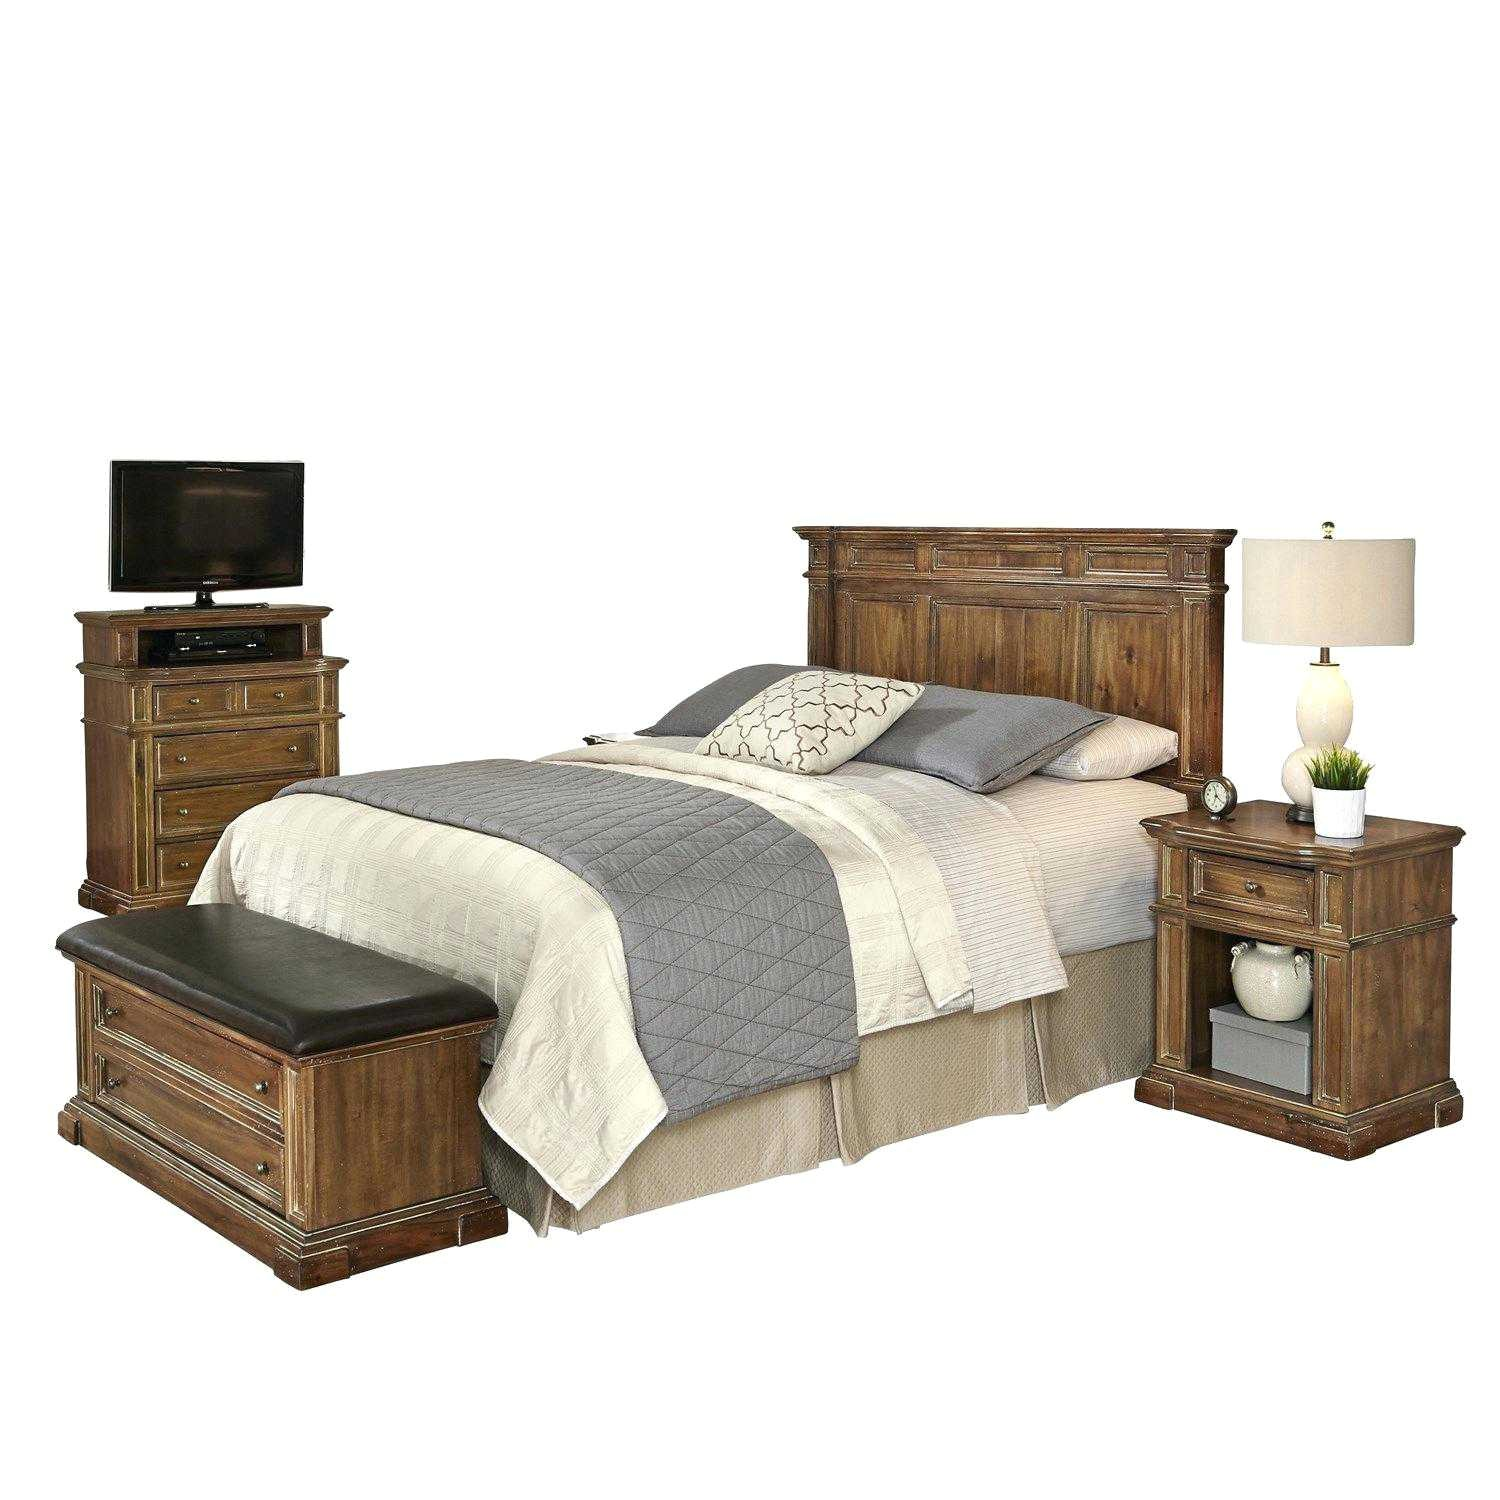 outstanding king size headboard ikea with cal ideas